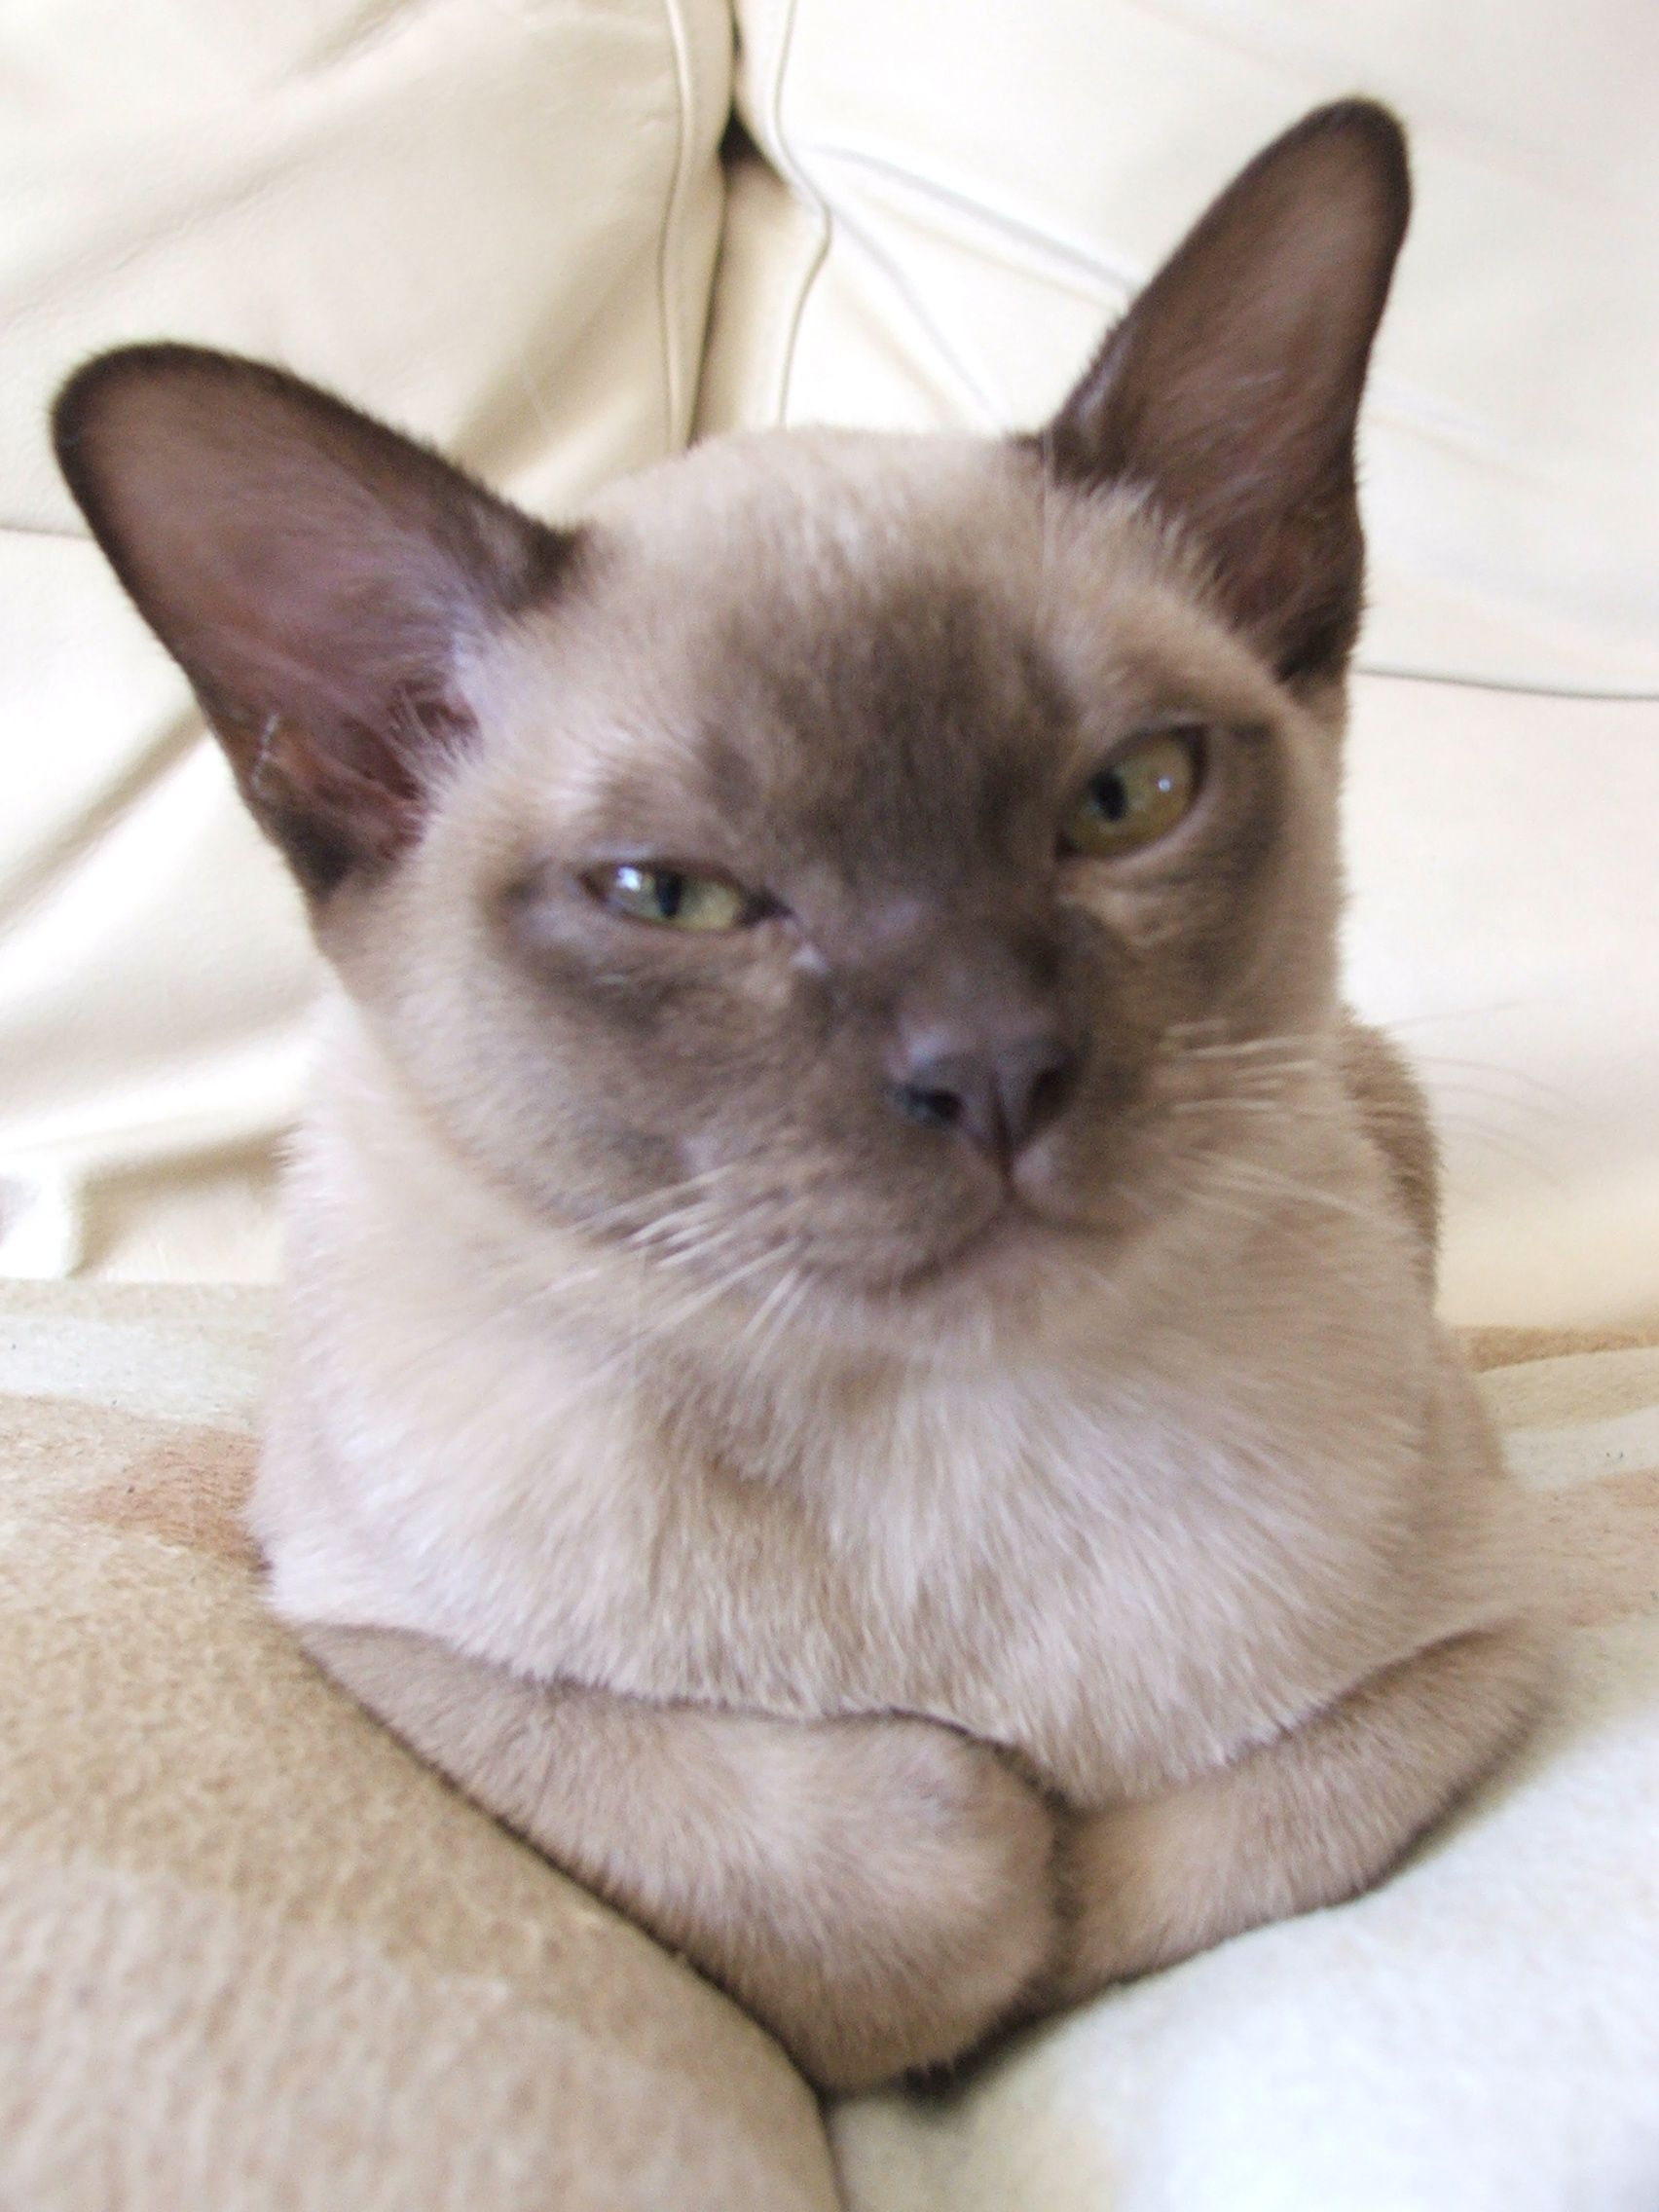 What is this kitten thinking?kitten burmese Burmese